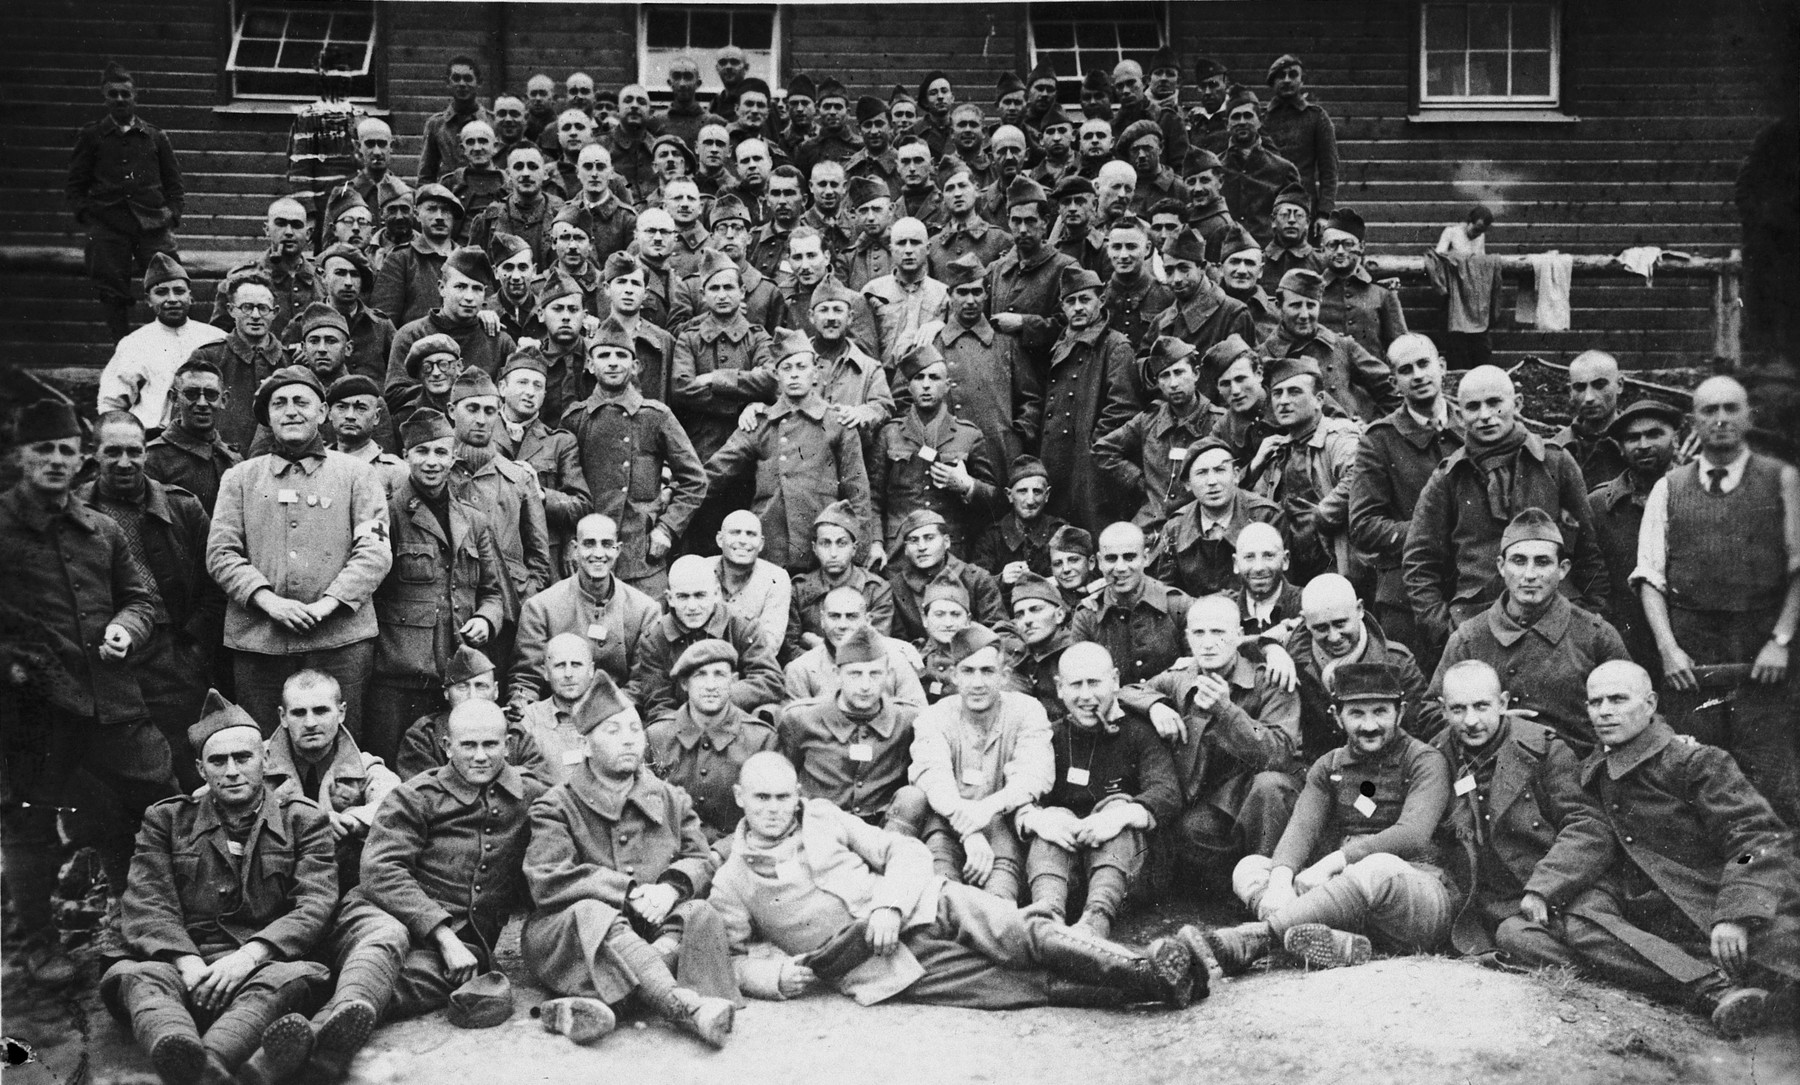 Group portrait of French POWs in Stalag XVIII.  Among those pictured is the uncle of Marianne Schwab in the lower left corner.